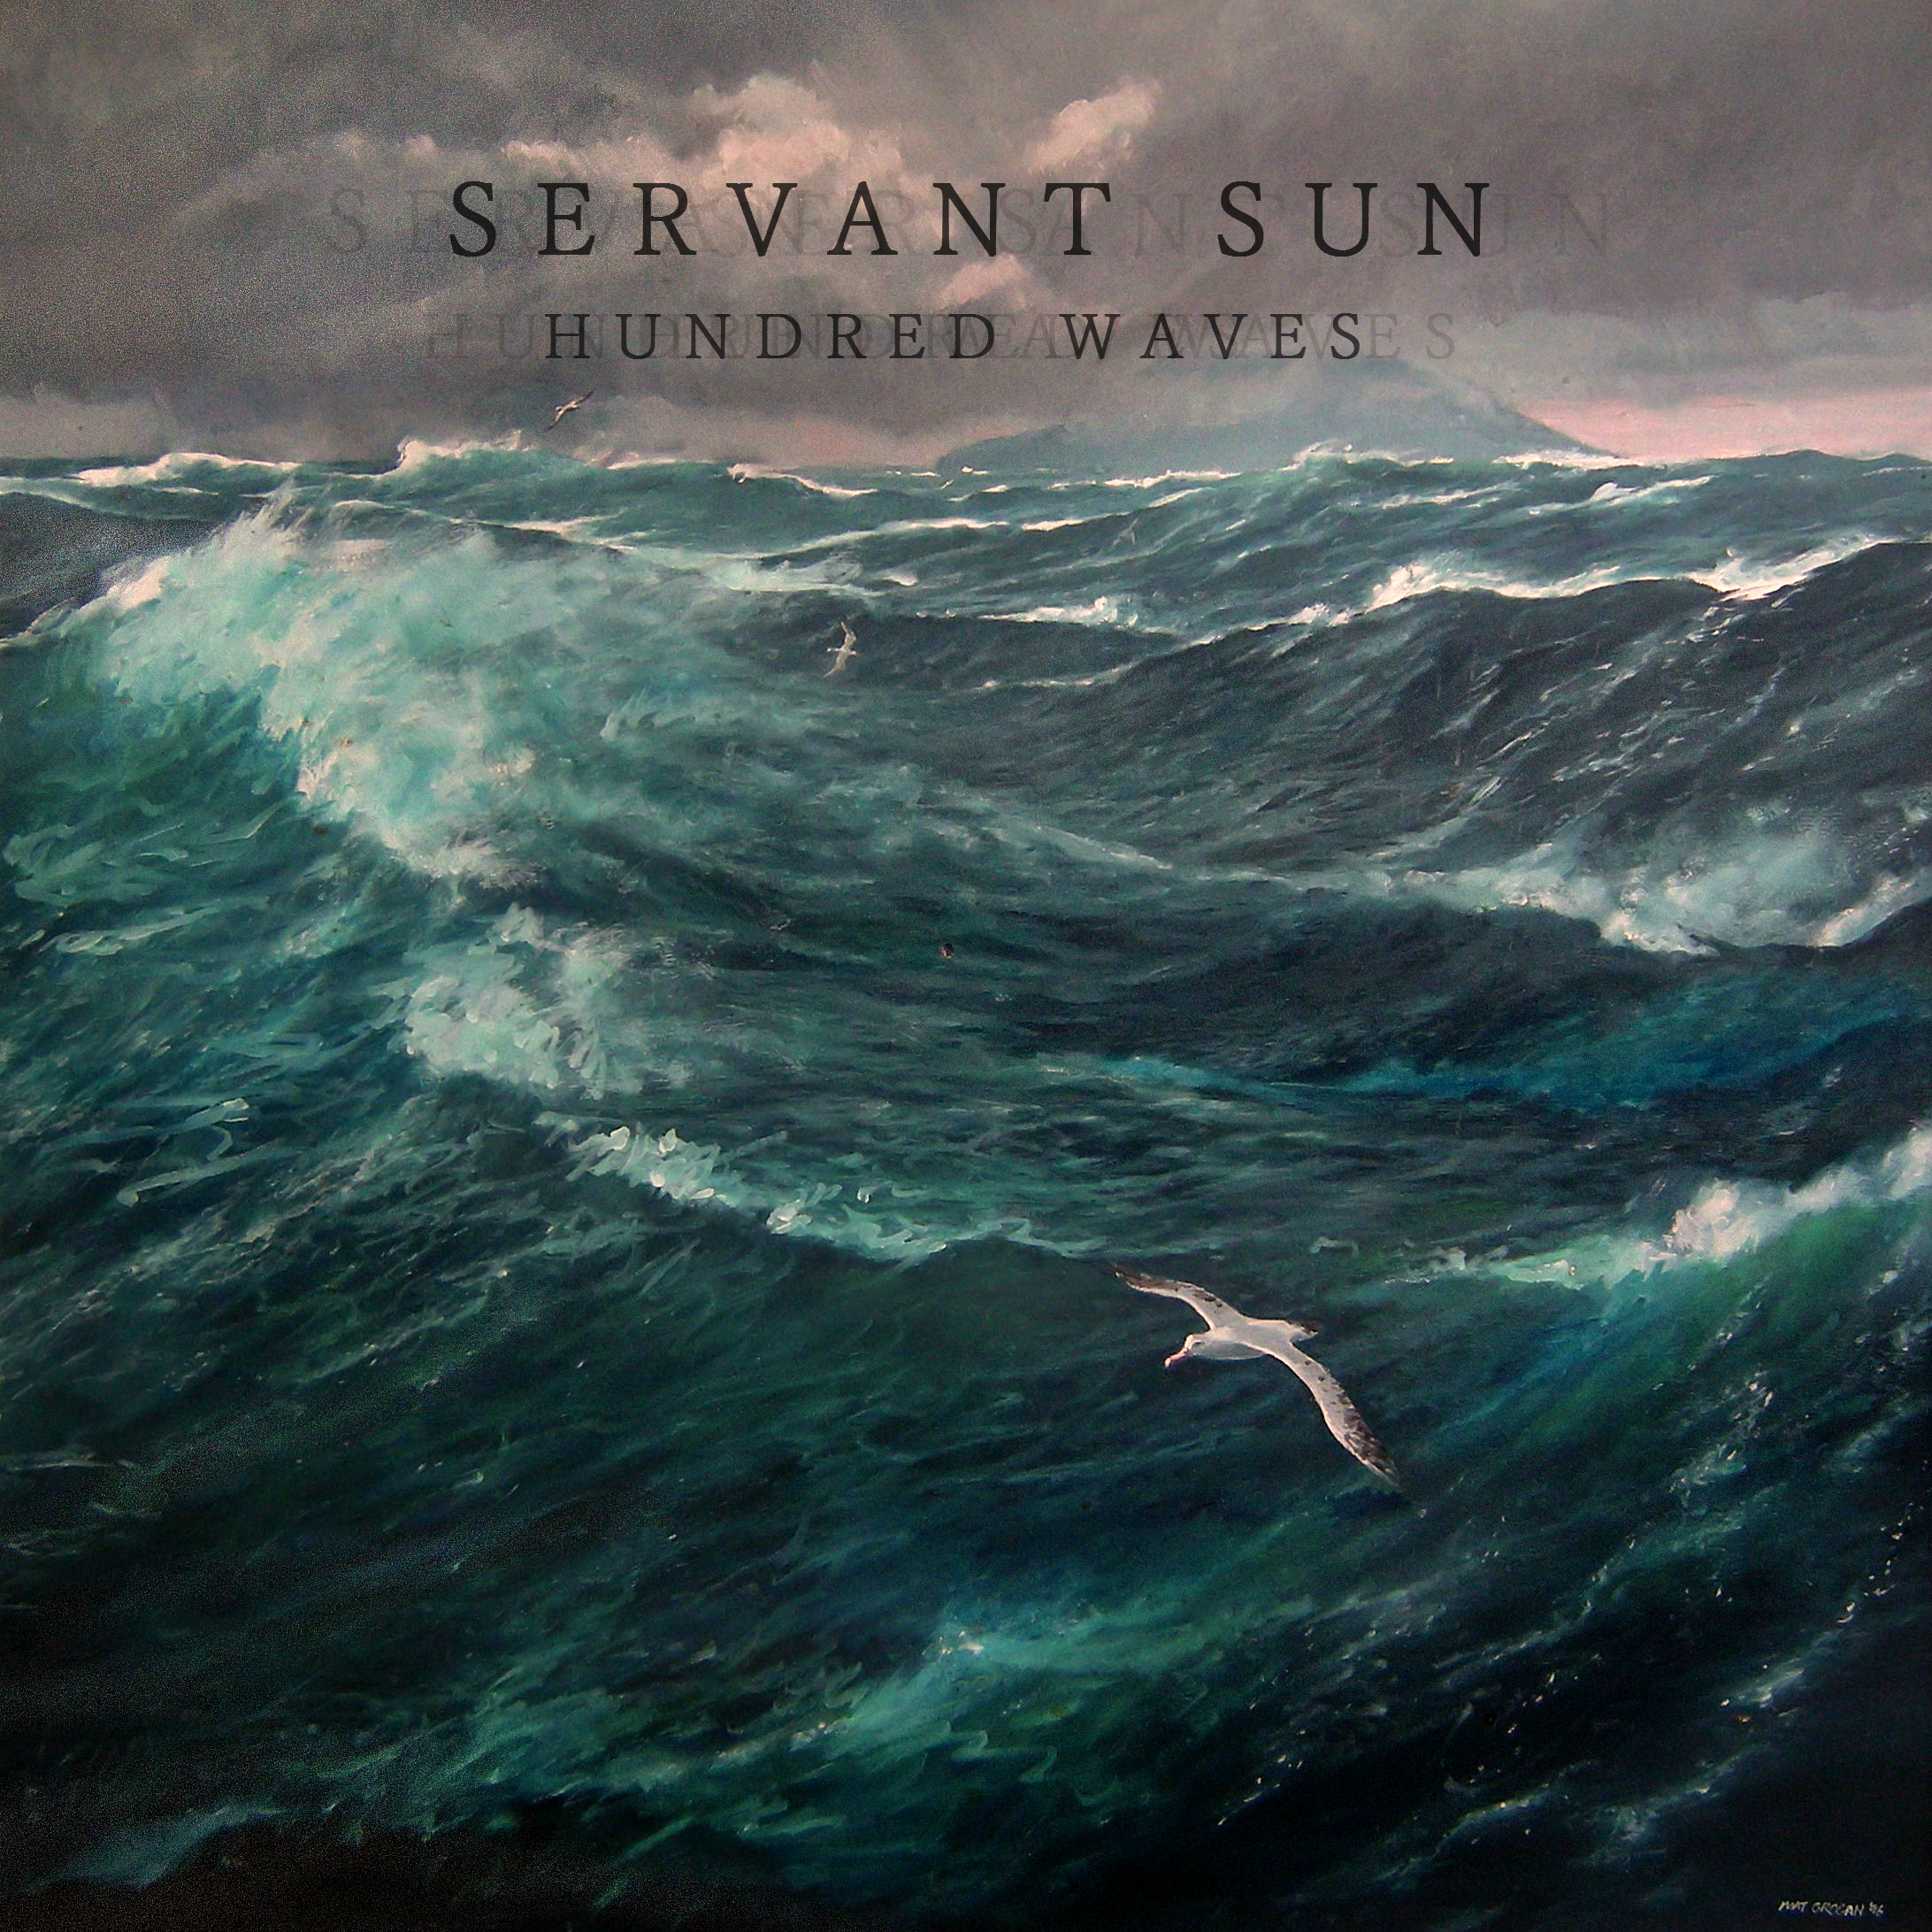 Servant Sun – Hundred Waves – CD Review